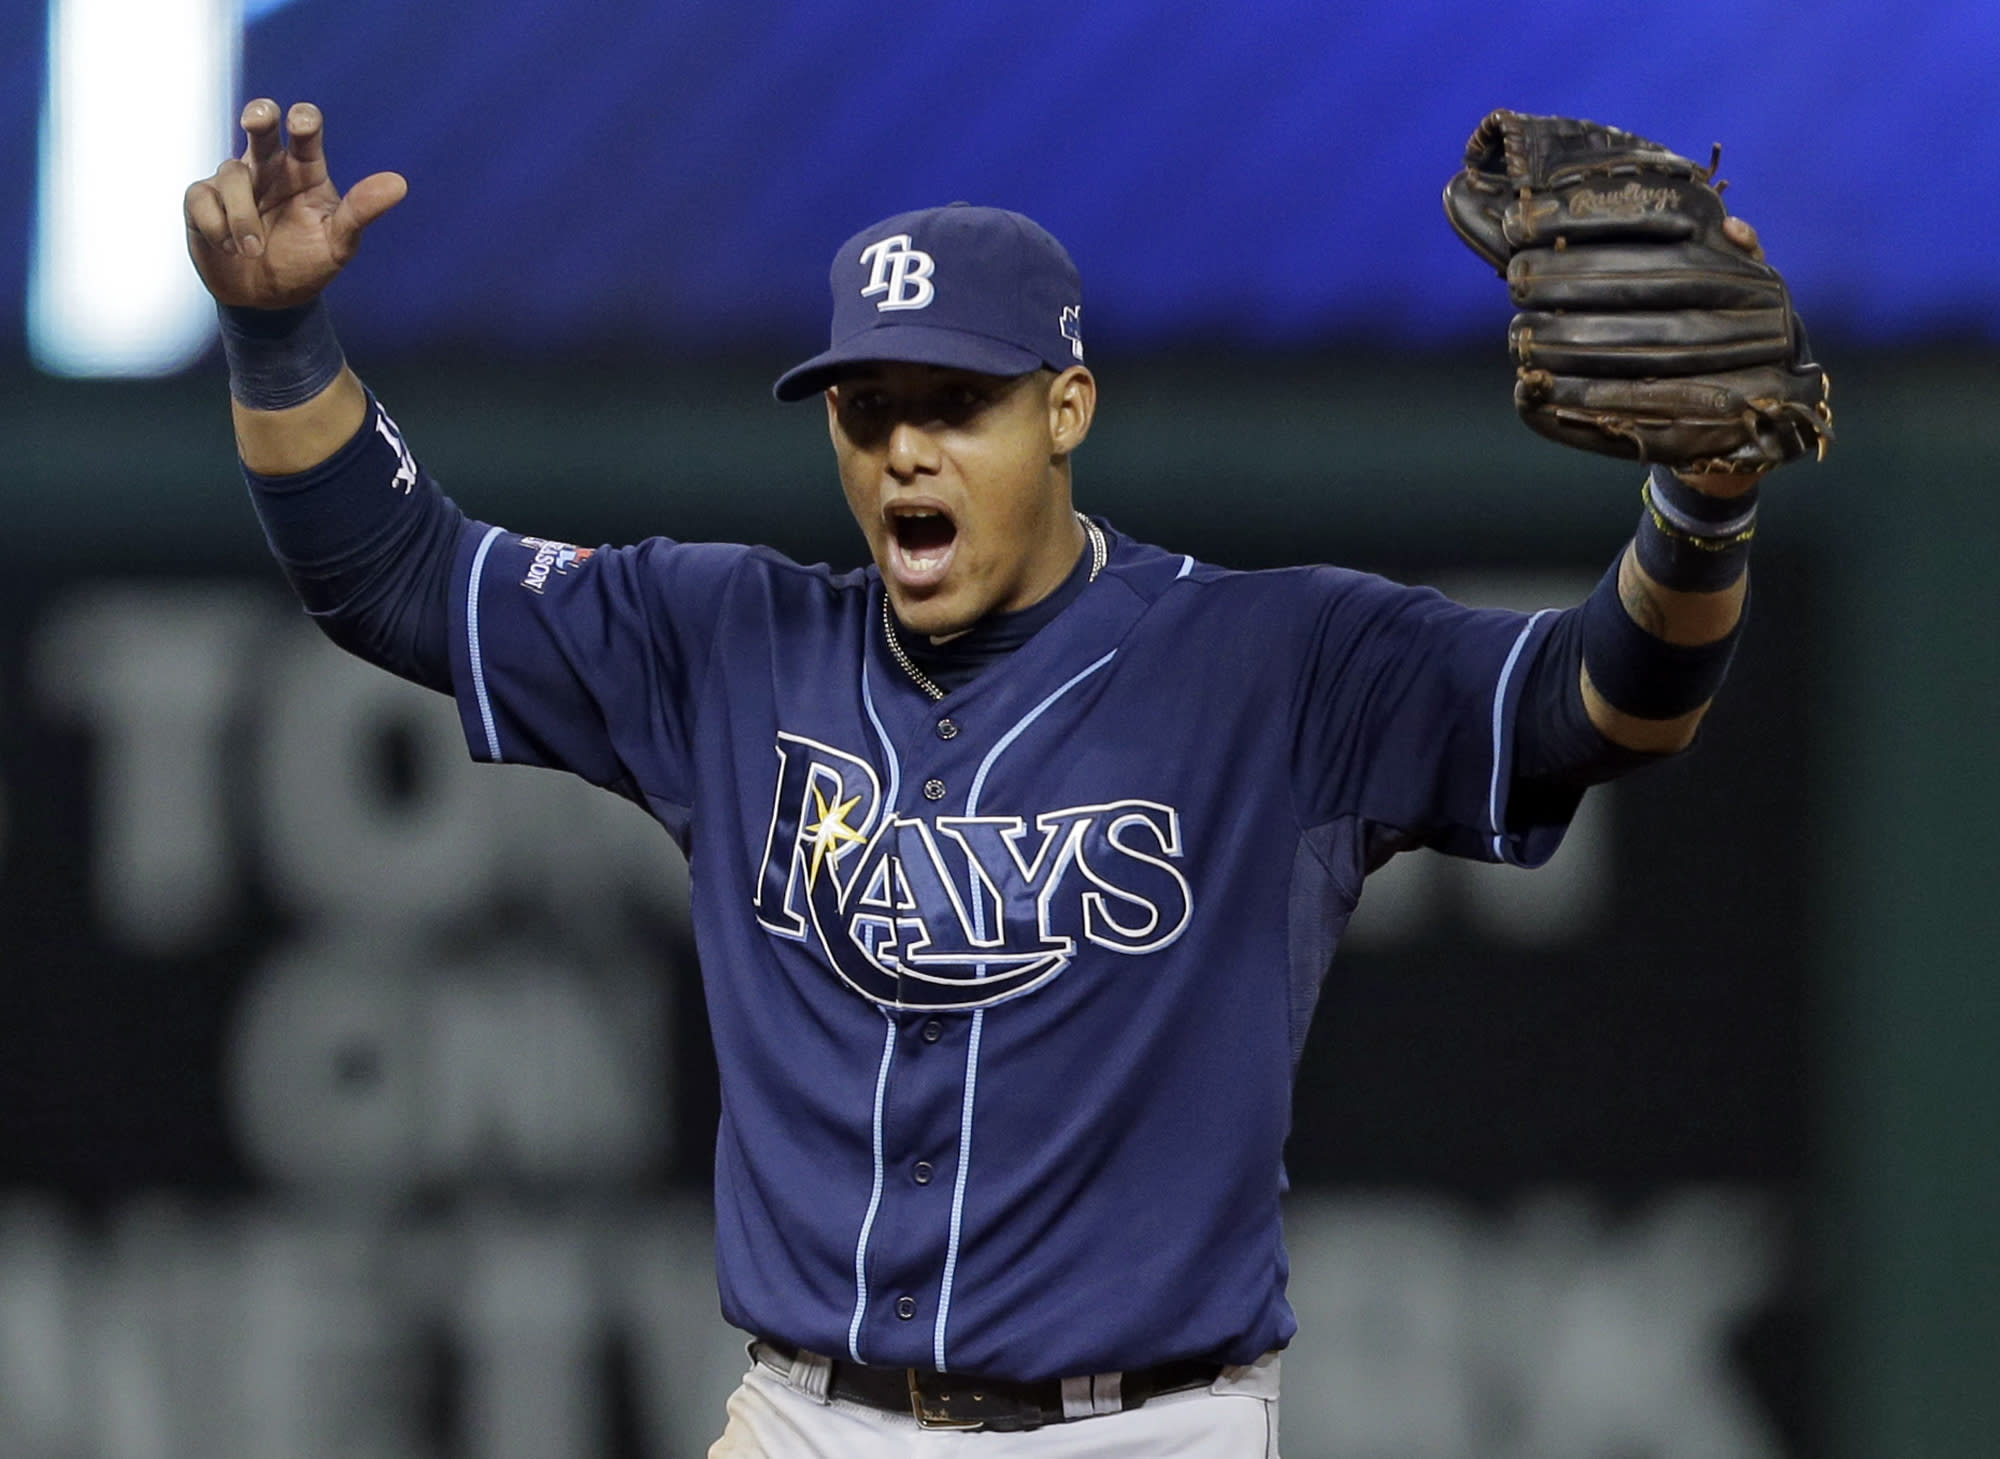 Tampa Bay Rays shortstop Yunel Escobar celebrates after completing a bases-loaded double play against the Cleveland Indians to end the fourth inning in the AL wild-card baseball game Wednesday, Oct. 2, 2013, in Cleveland. (AP Photo/Tony Dejak)